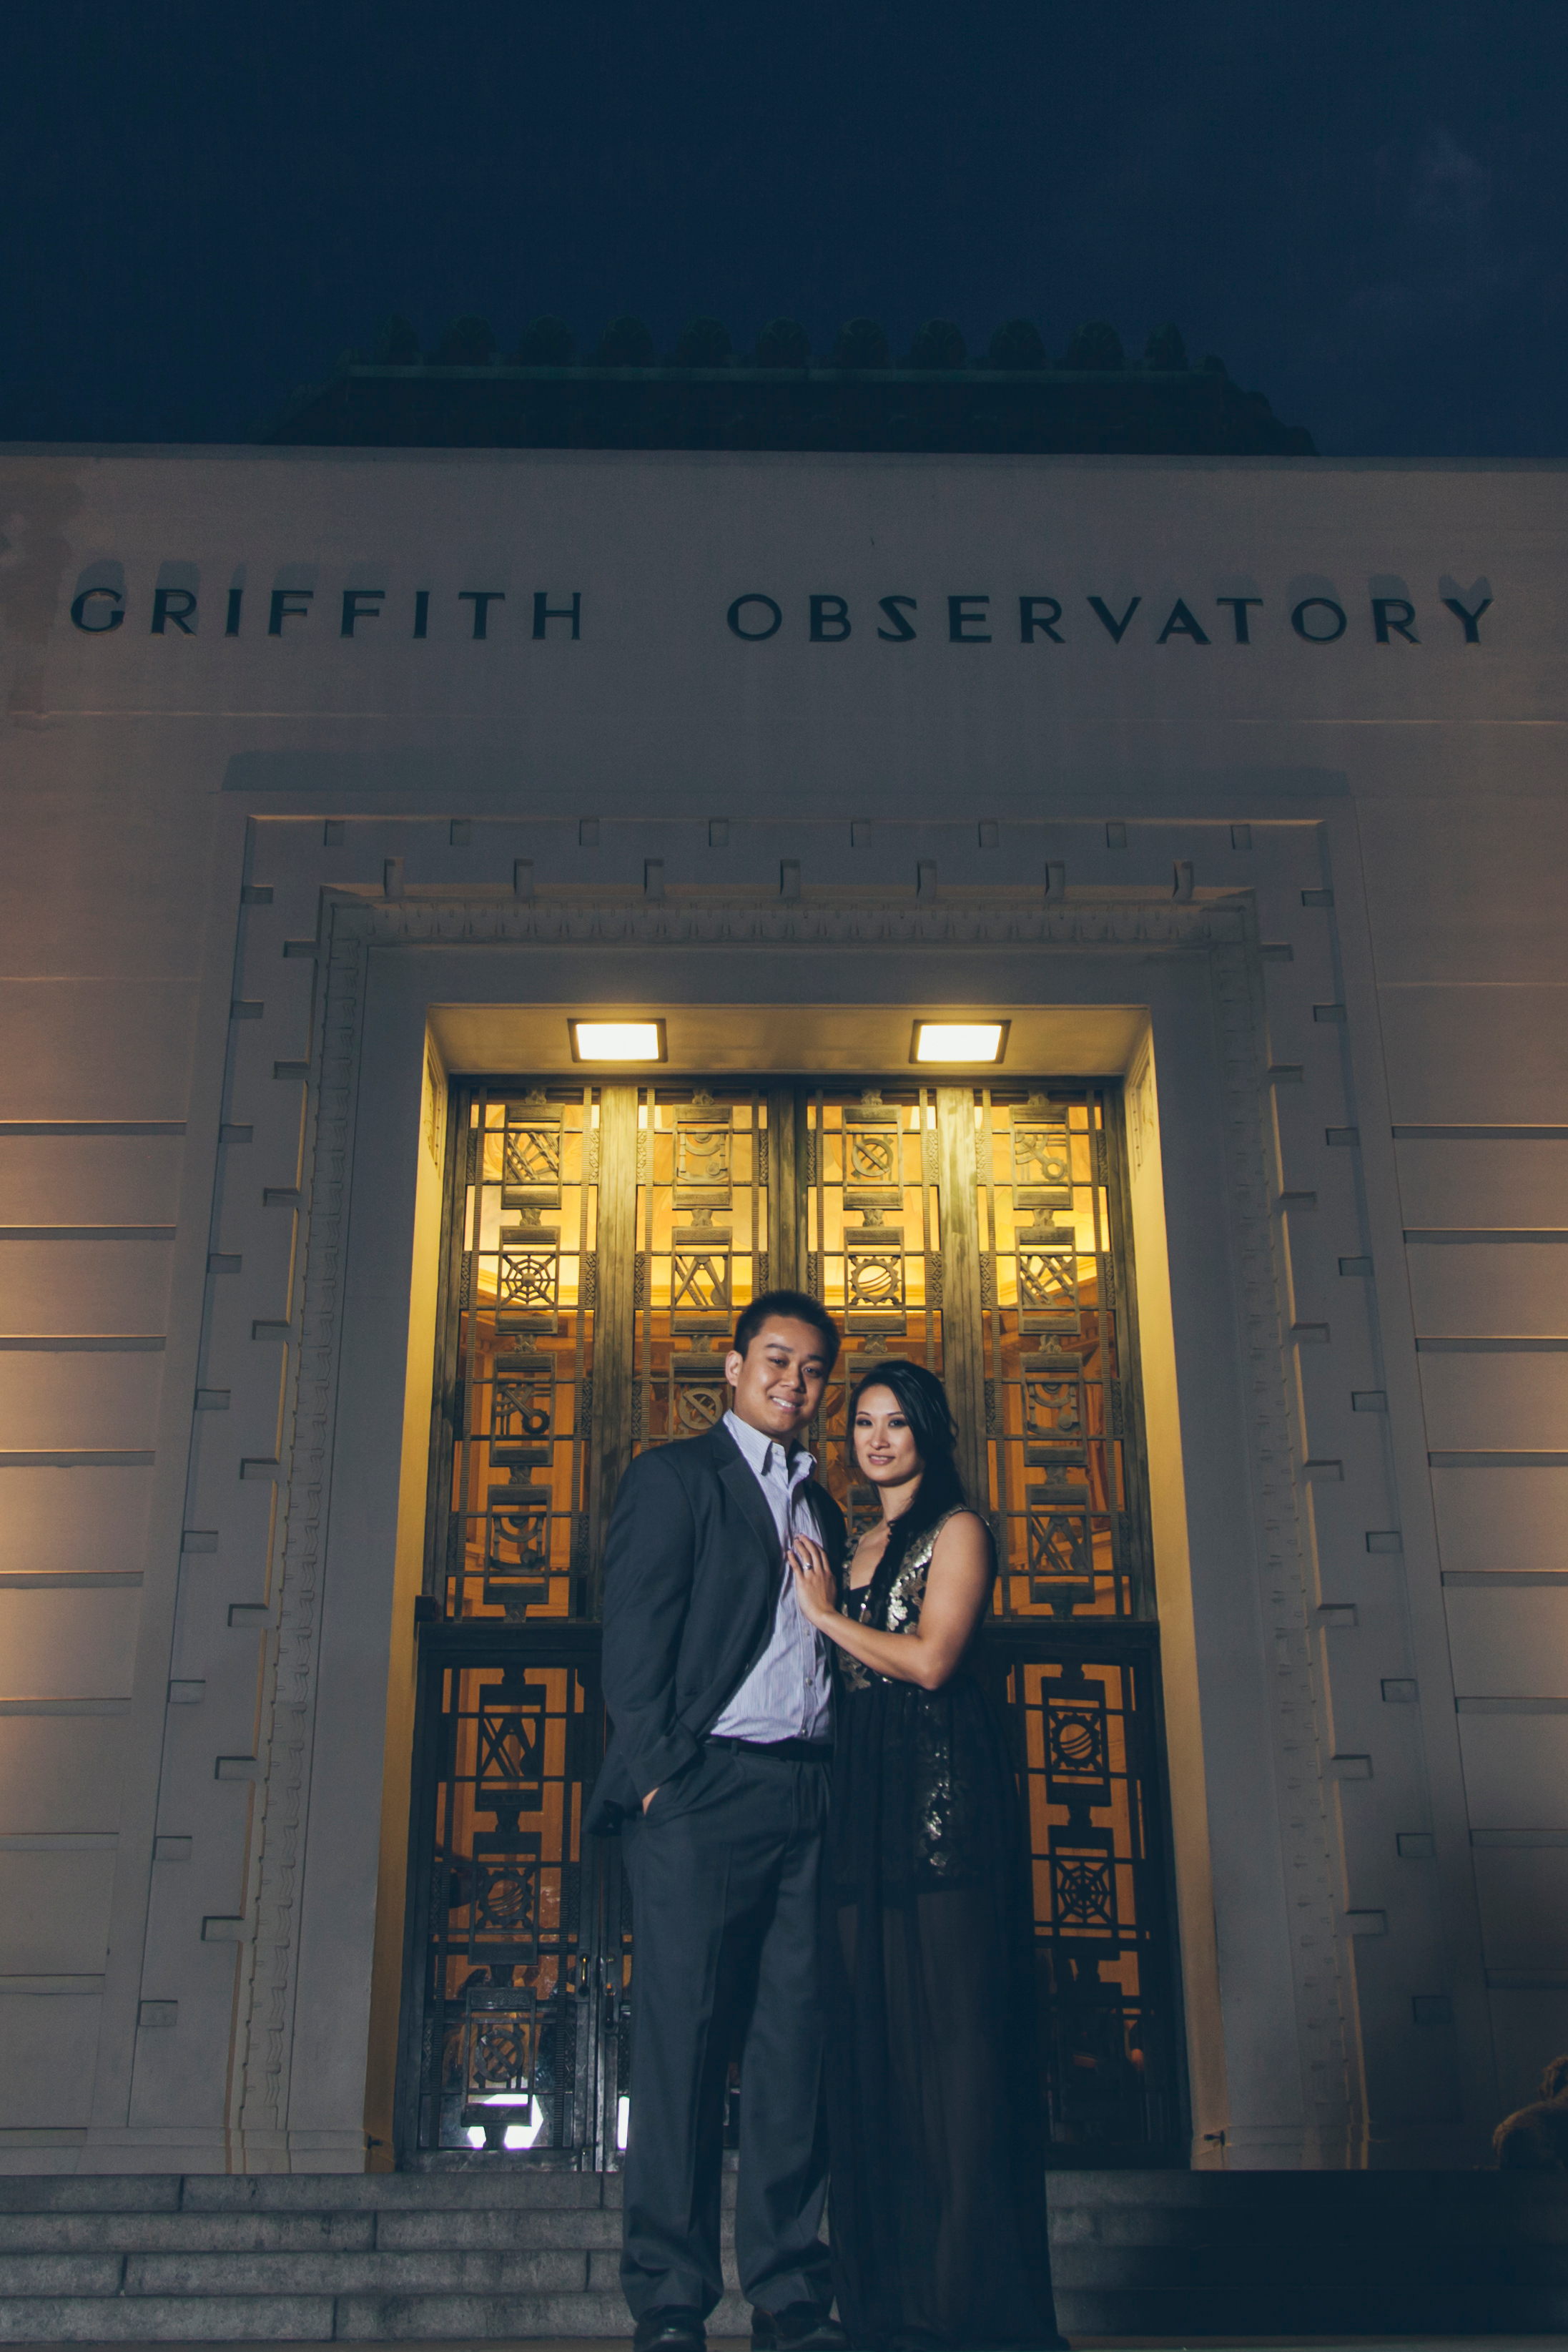 Griffith Observatory Engagement Photos Nicole and Vien-8690.jpg